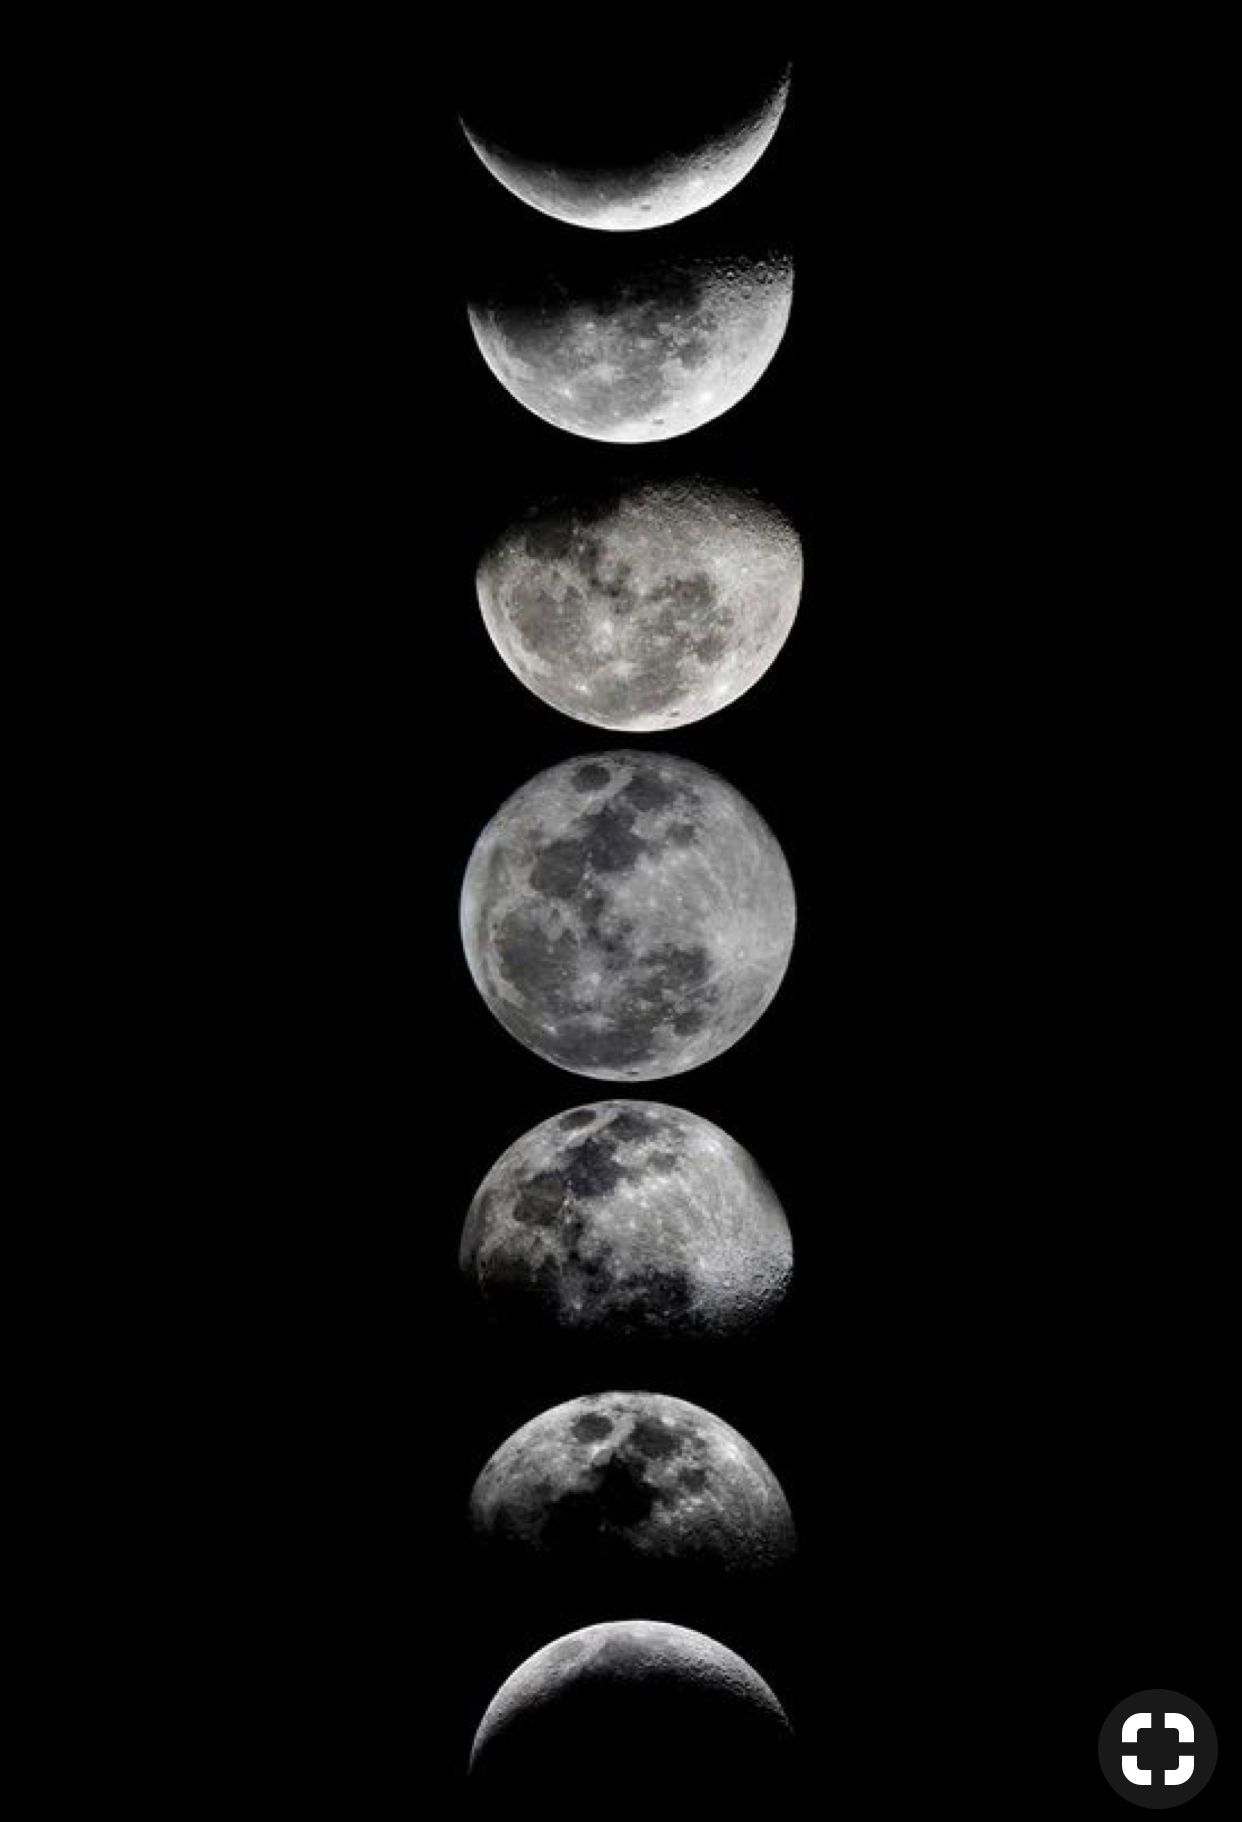 Moon Cycle Wallpapers   Top Free Moon Cycle Backgrounds ...